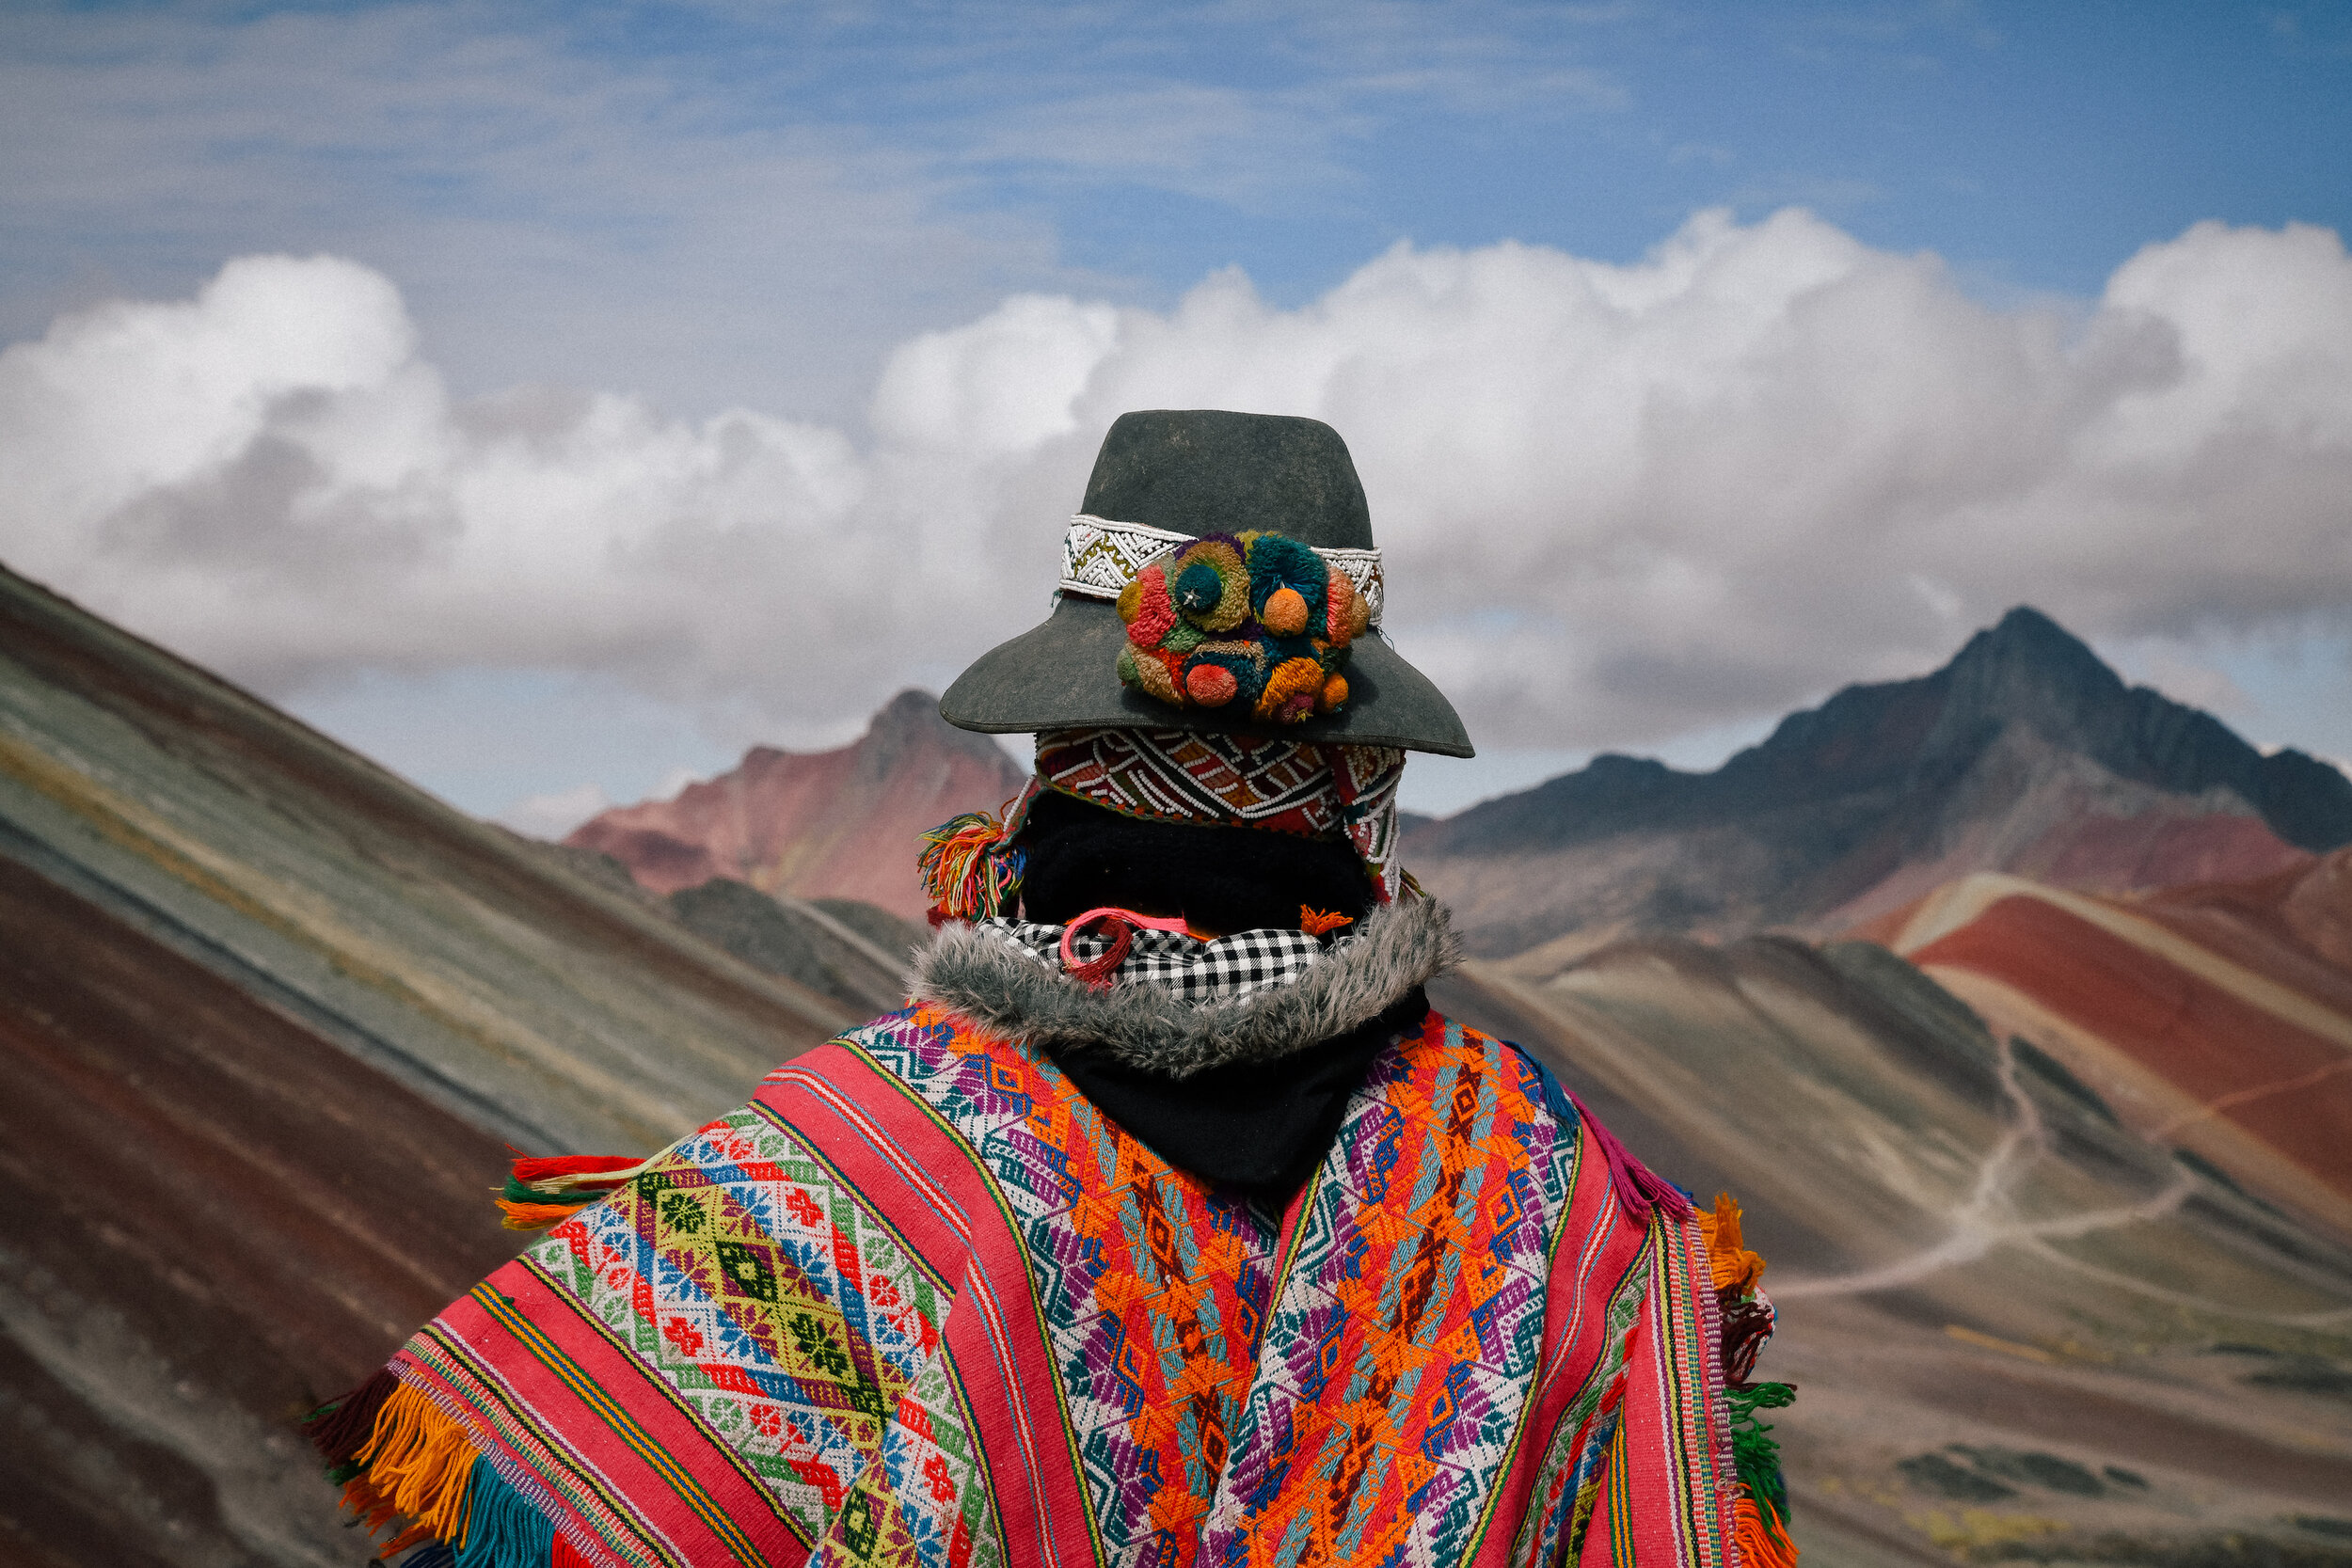 A man beautifully dressed at Rainbow Mountain!